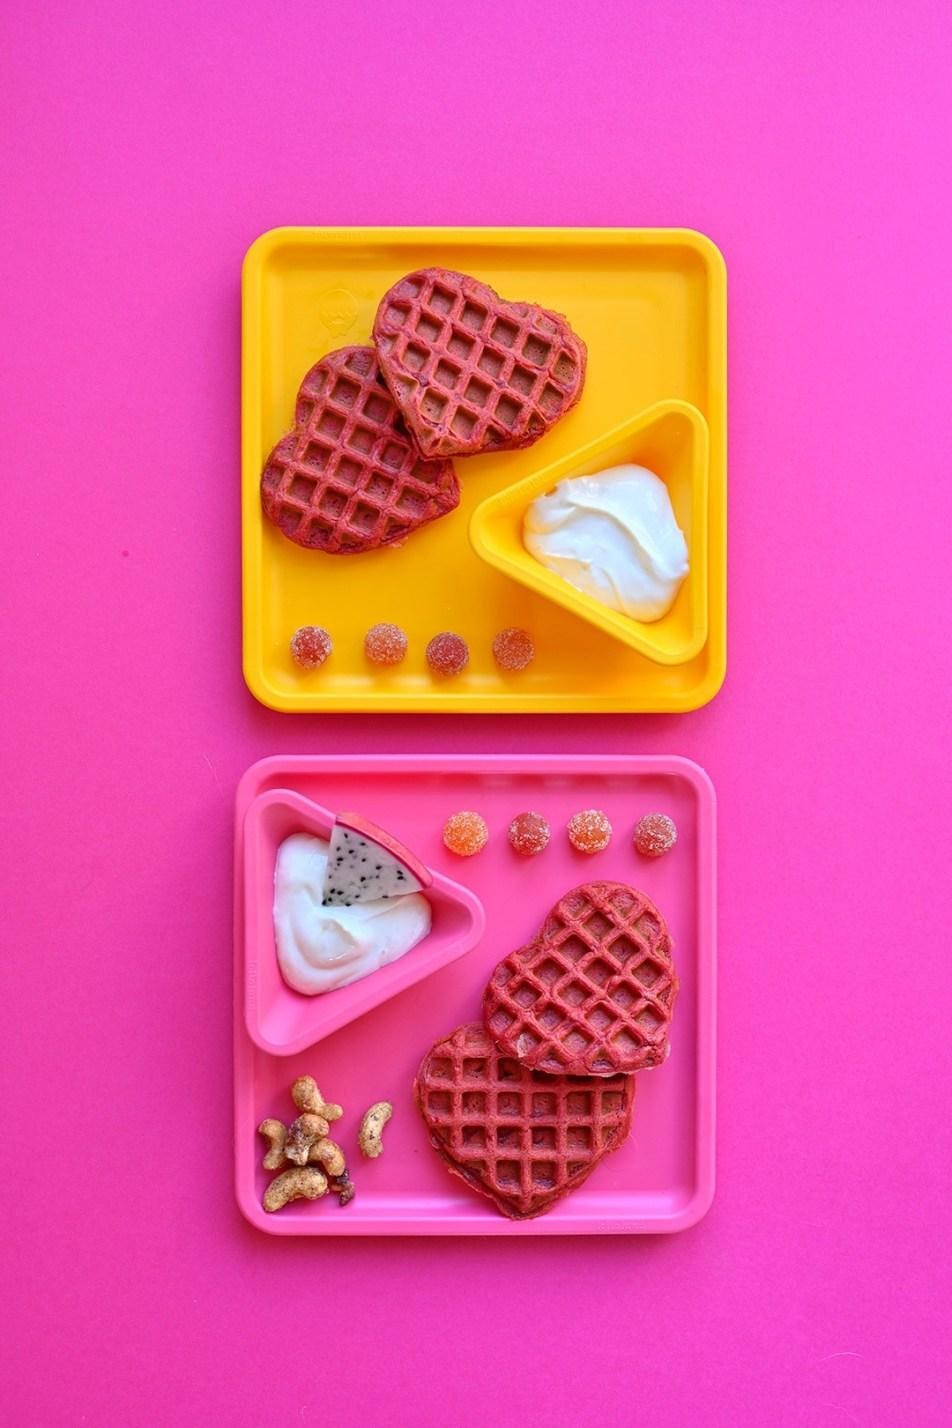 Pink and yellow kids plate on a pink background. The plates have SmartyPants Kids gummies, yogurt, dragonfruit and beet hear-shaped waffles.